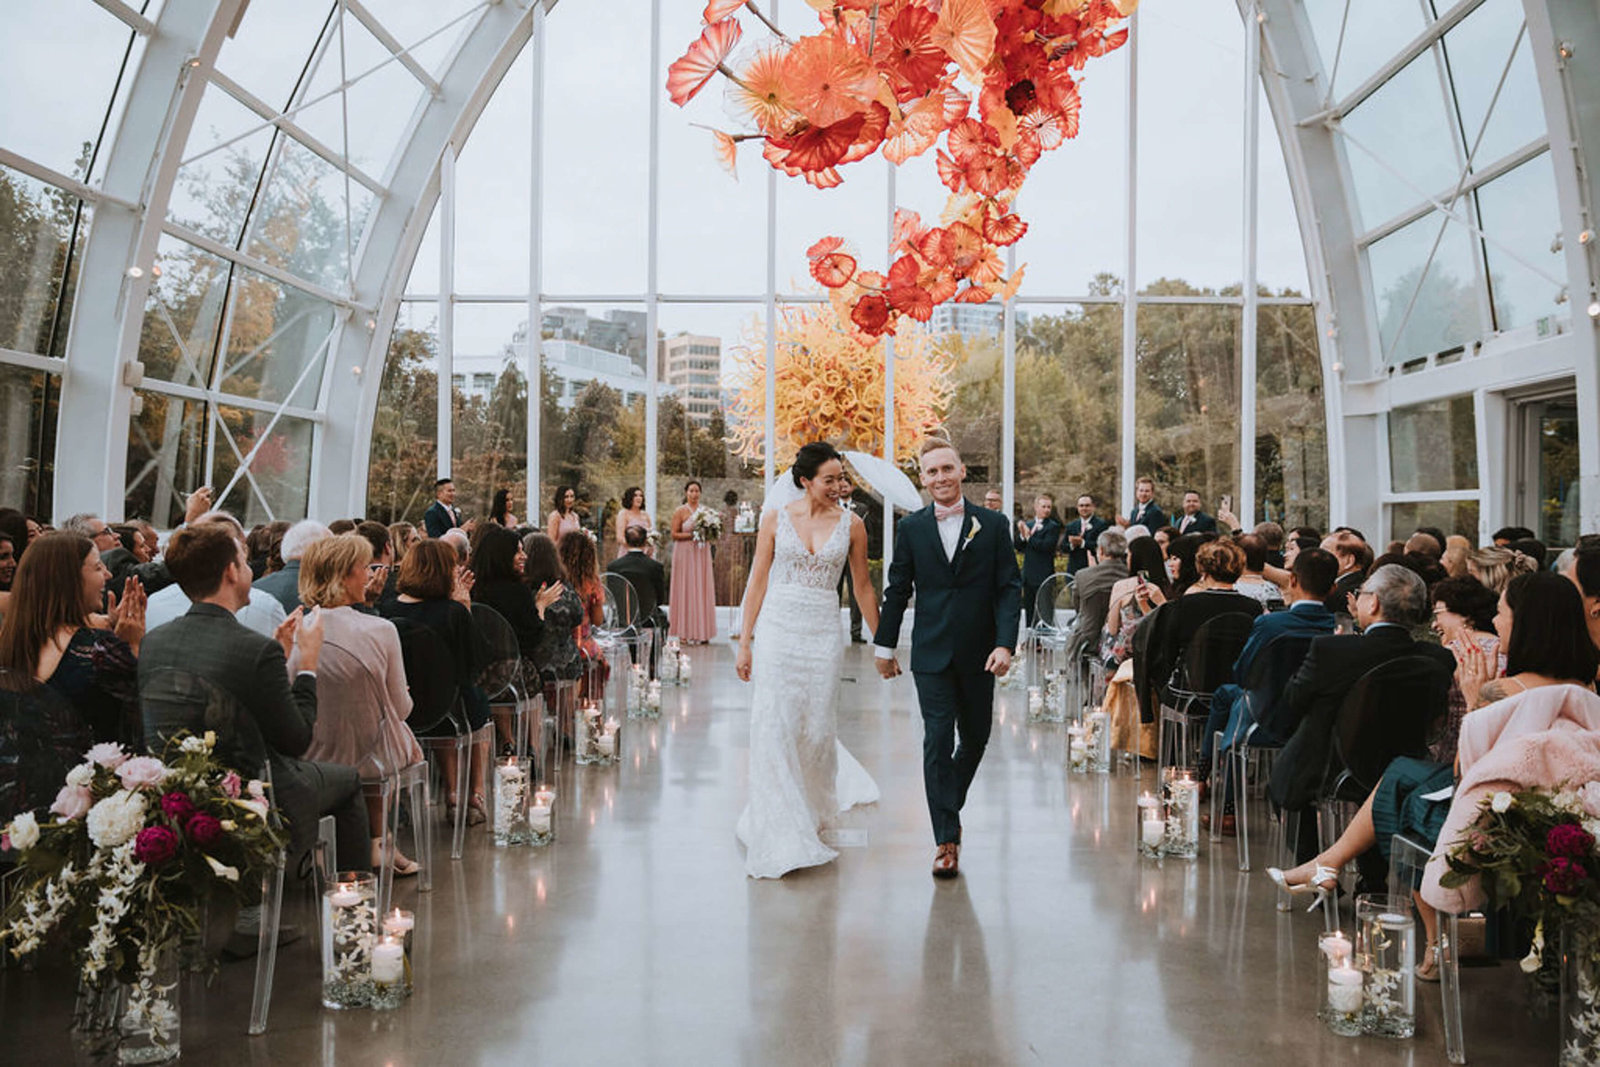 chihuly-garden-and-glass-wedding-sharel-eric-by-Adina-Preston-Photography-2019-366